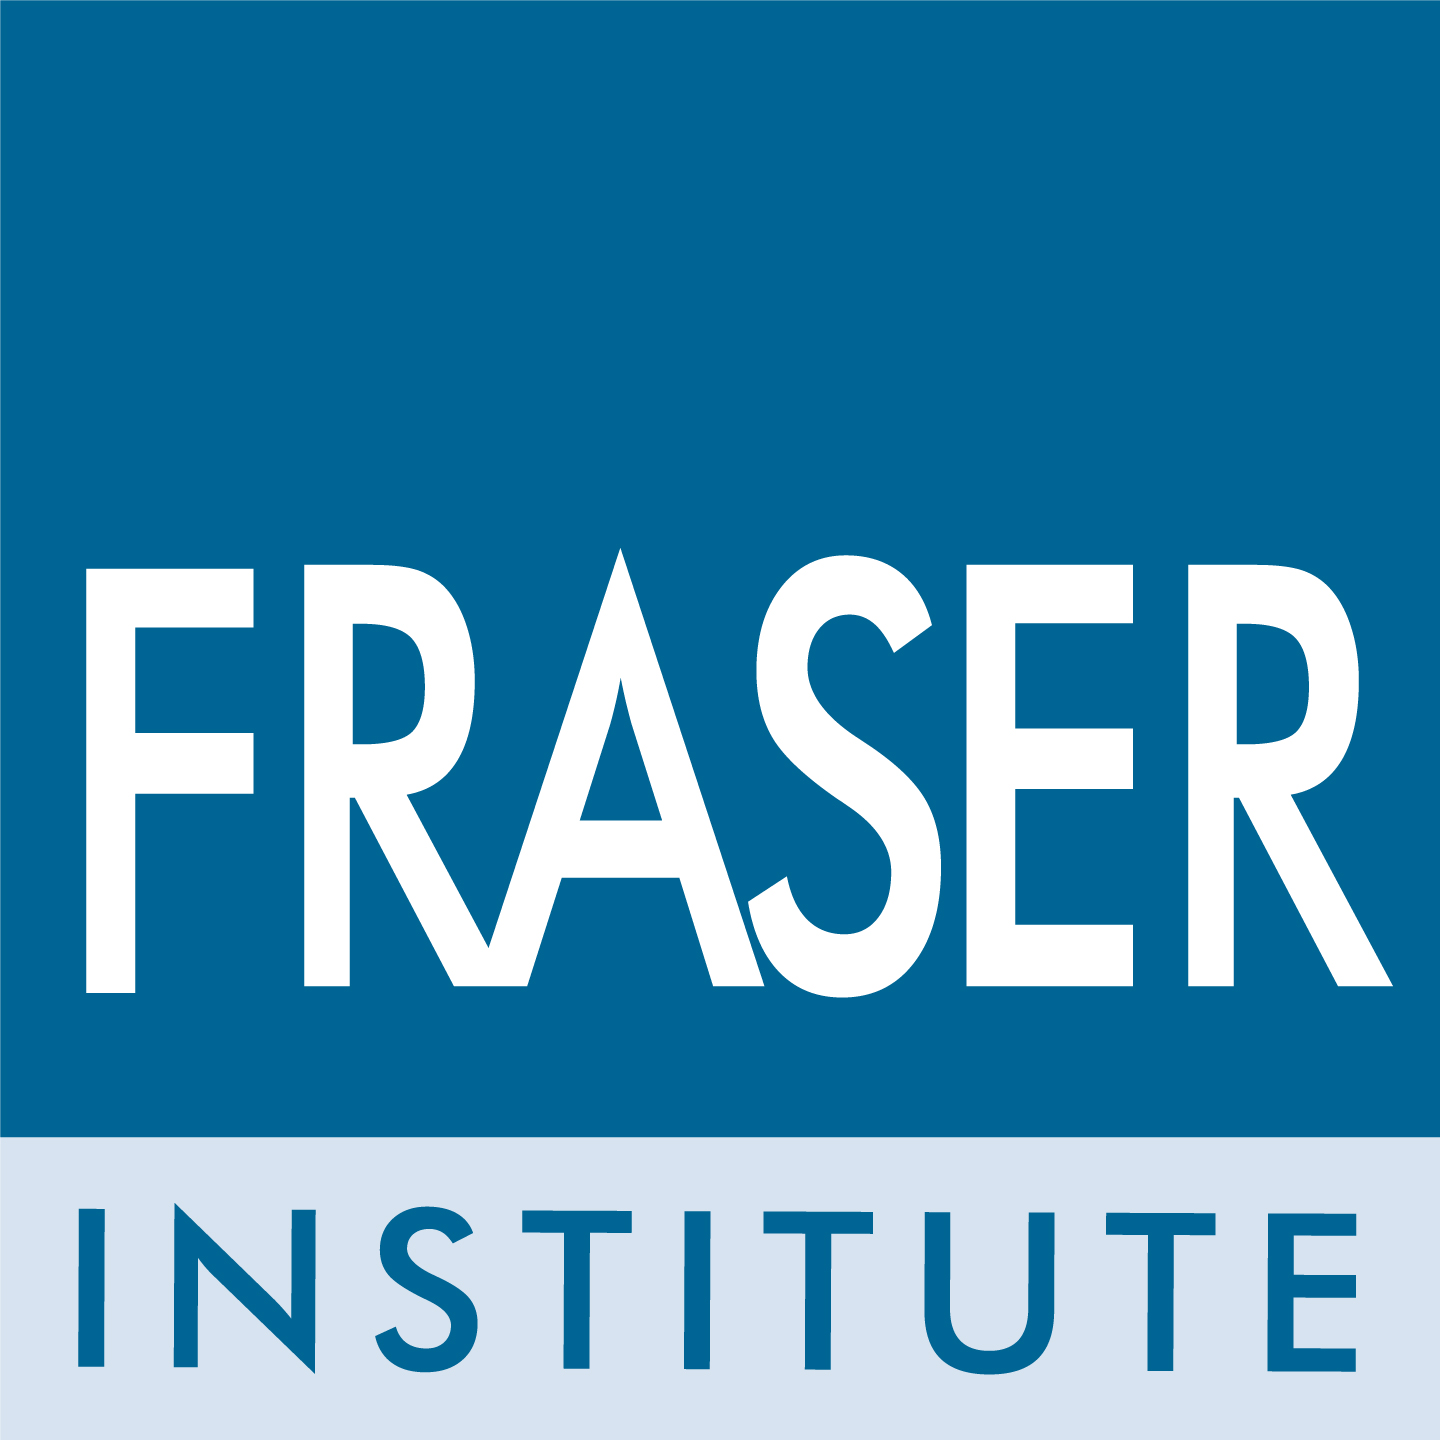 Fraser Institute News Release: Business investment in Canada propped up by housing in B.C